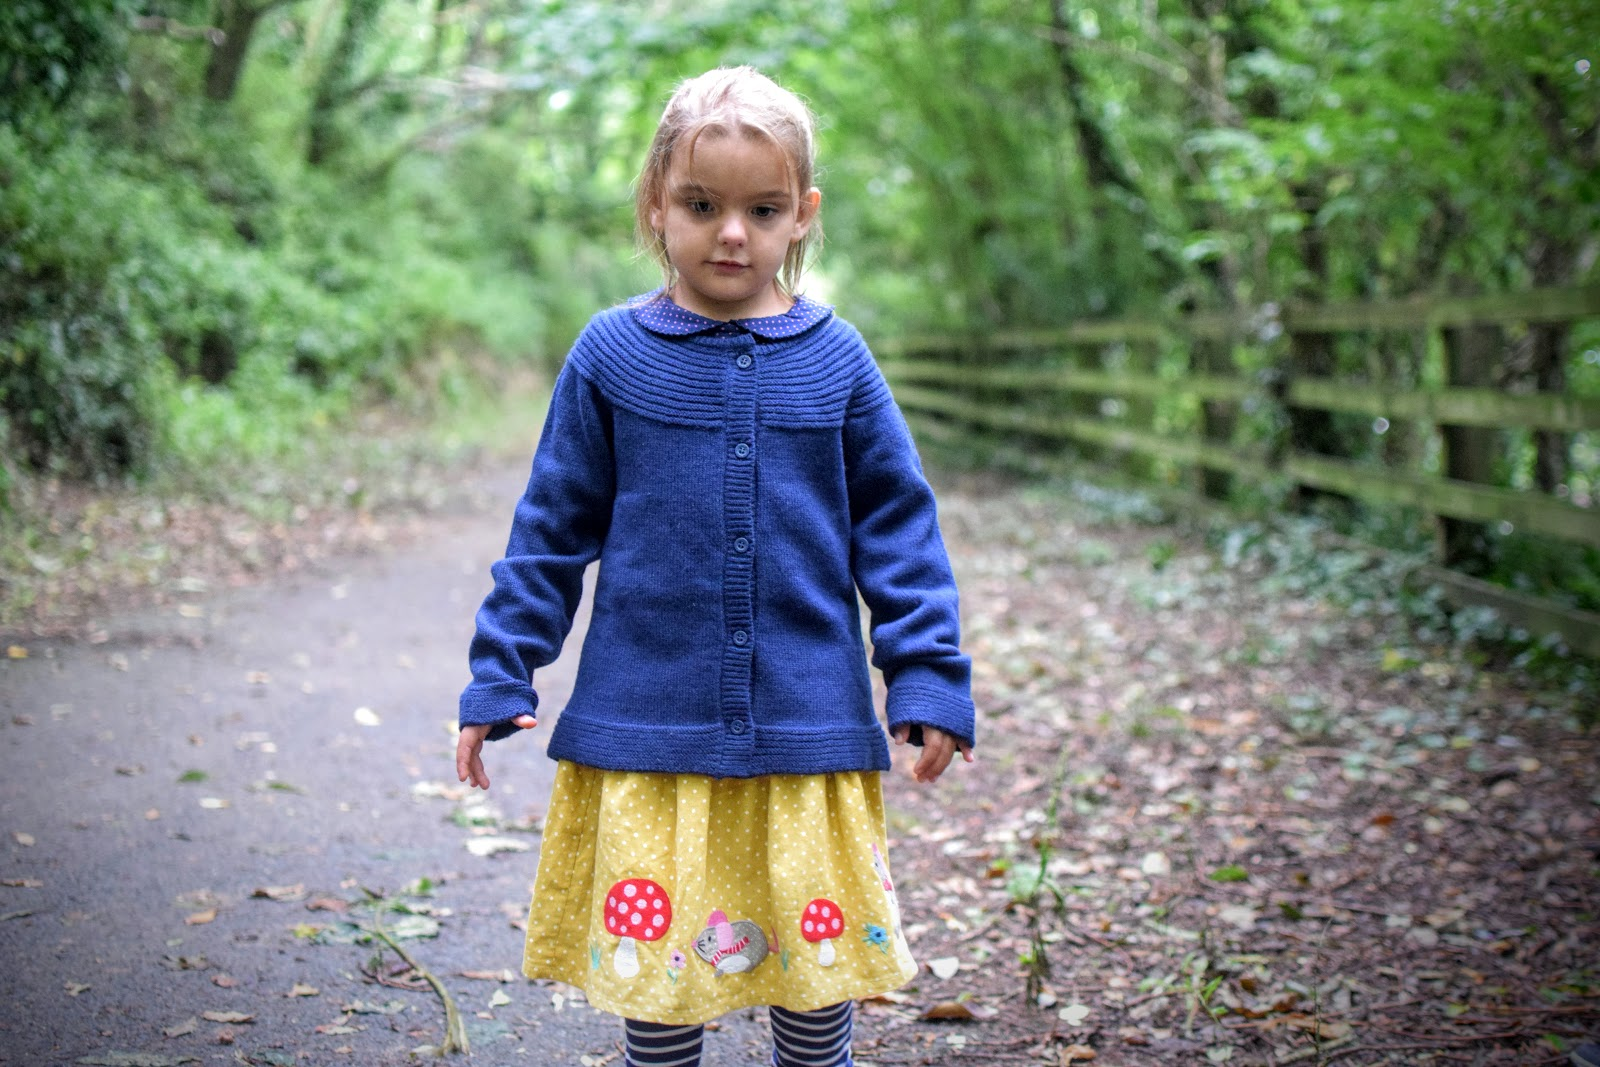 , A Woodland Walk and A First Look at the JoJo Maman Bébé Kids Autumn Range #AW16